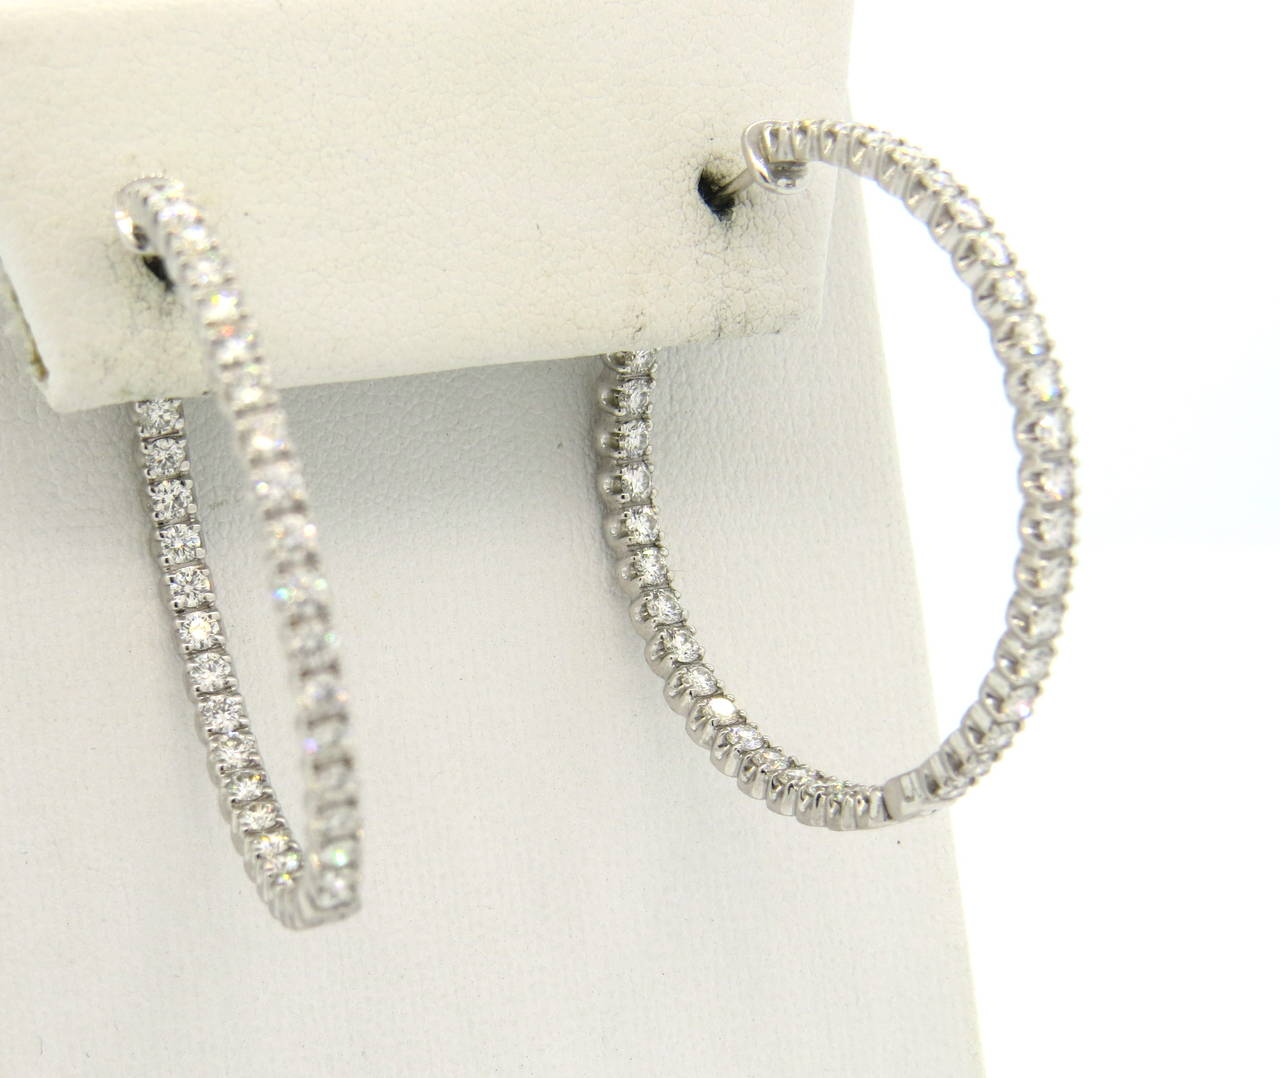 c81429fae Tiffany & Co. Metro Inside Out Diamond Gold Hinged Hoop Earrings In  Excellent Condition For